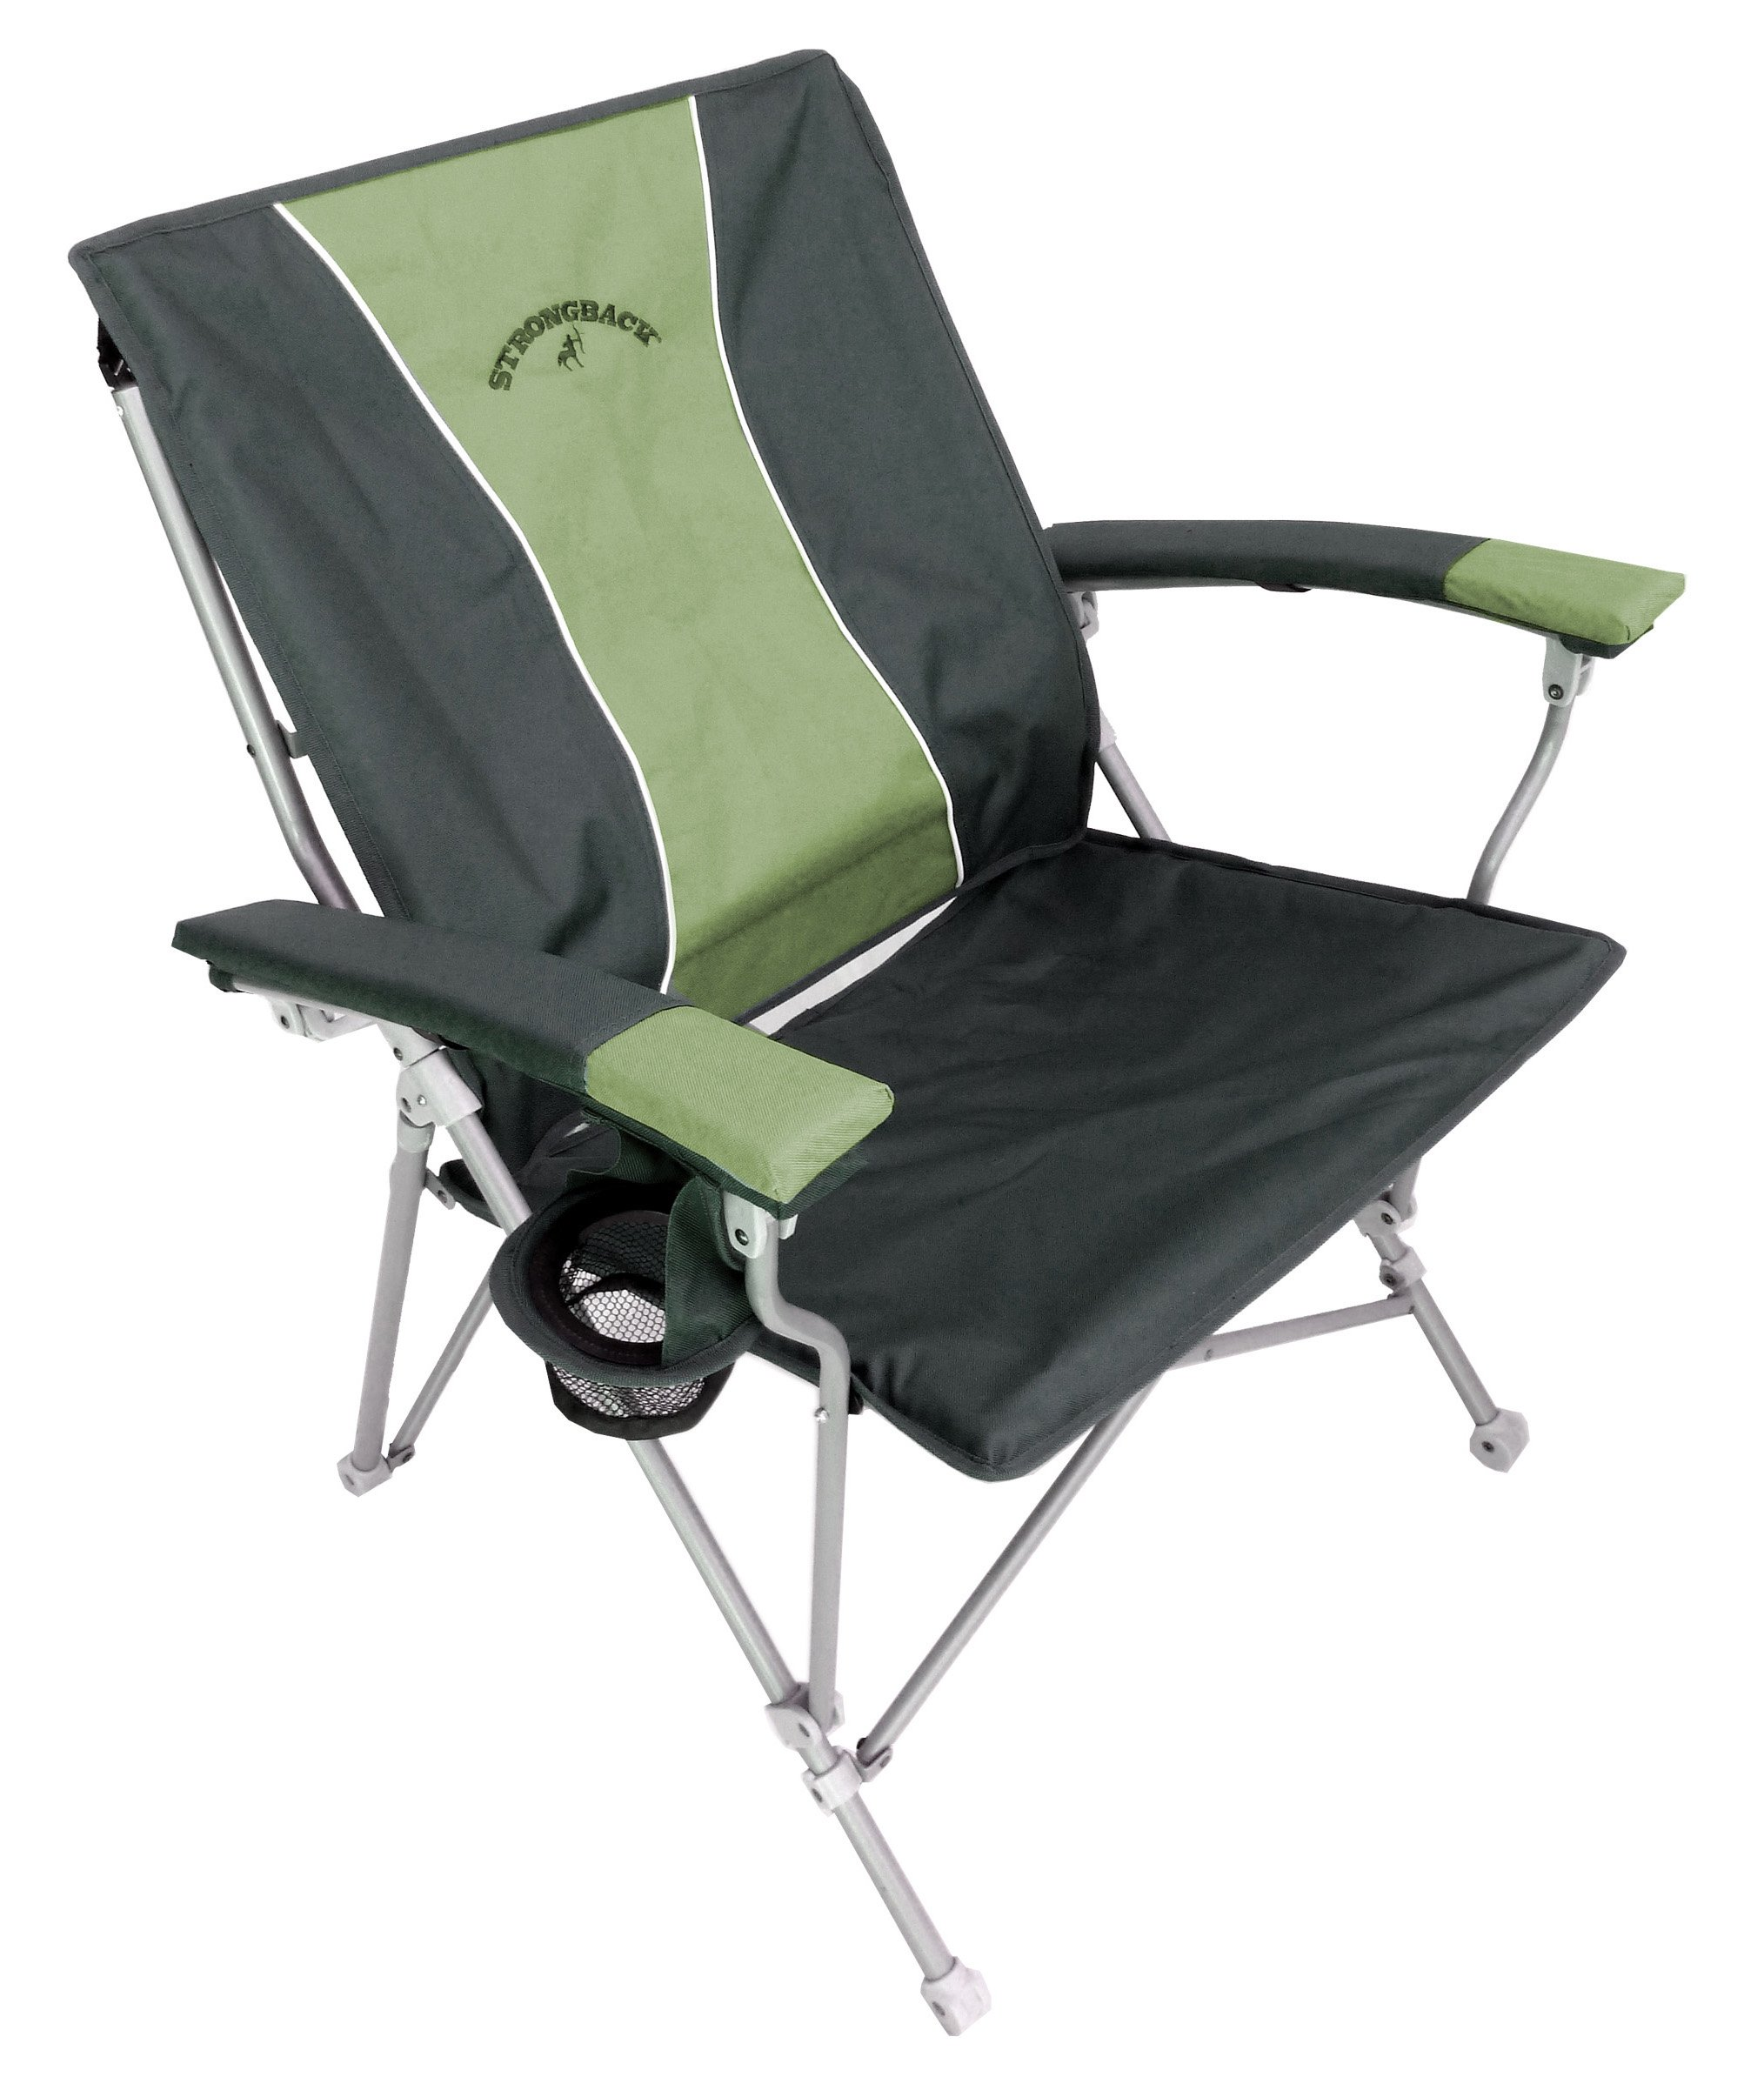 Strongback Chair Review  sc 1 st  HI Travel Tales & Strongback Chair Review: A camp chair with support